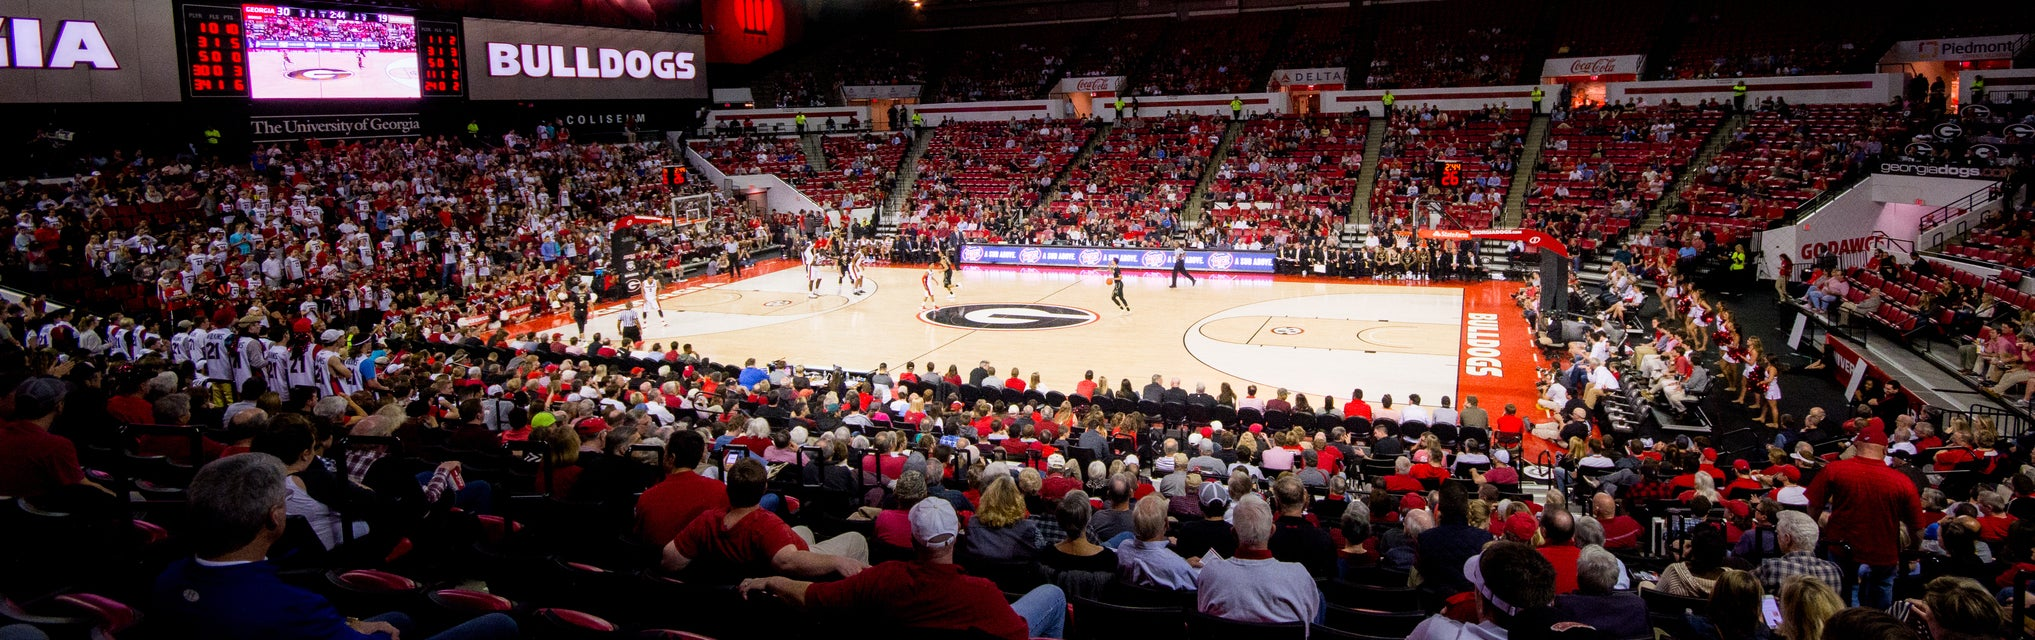 Georgia Basketball Tickets